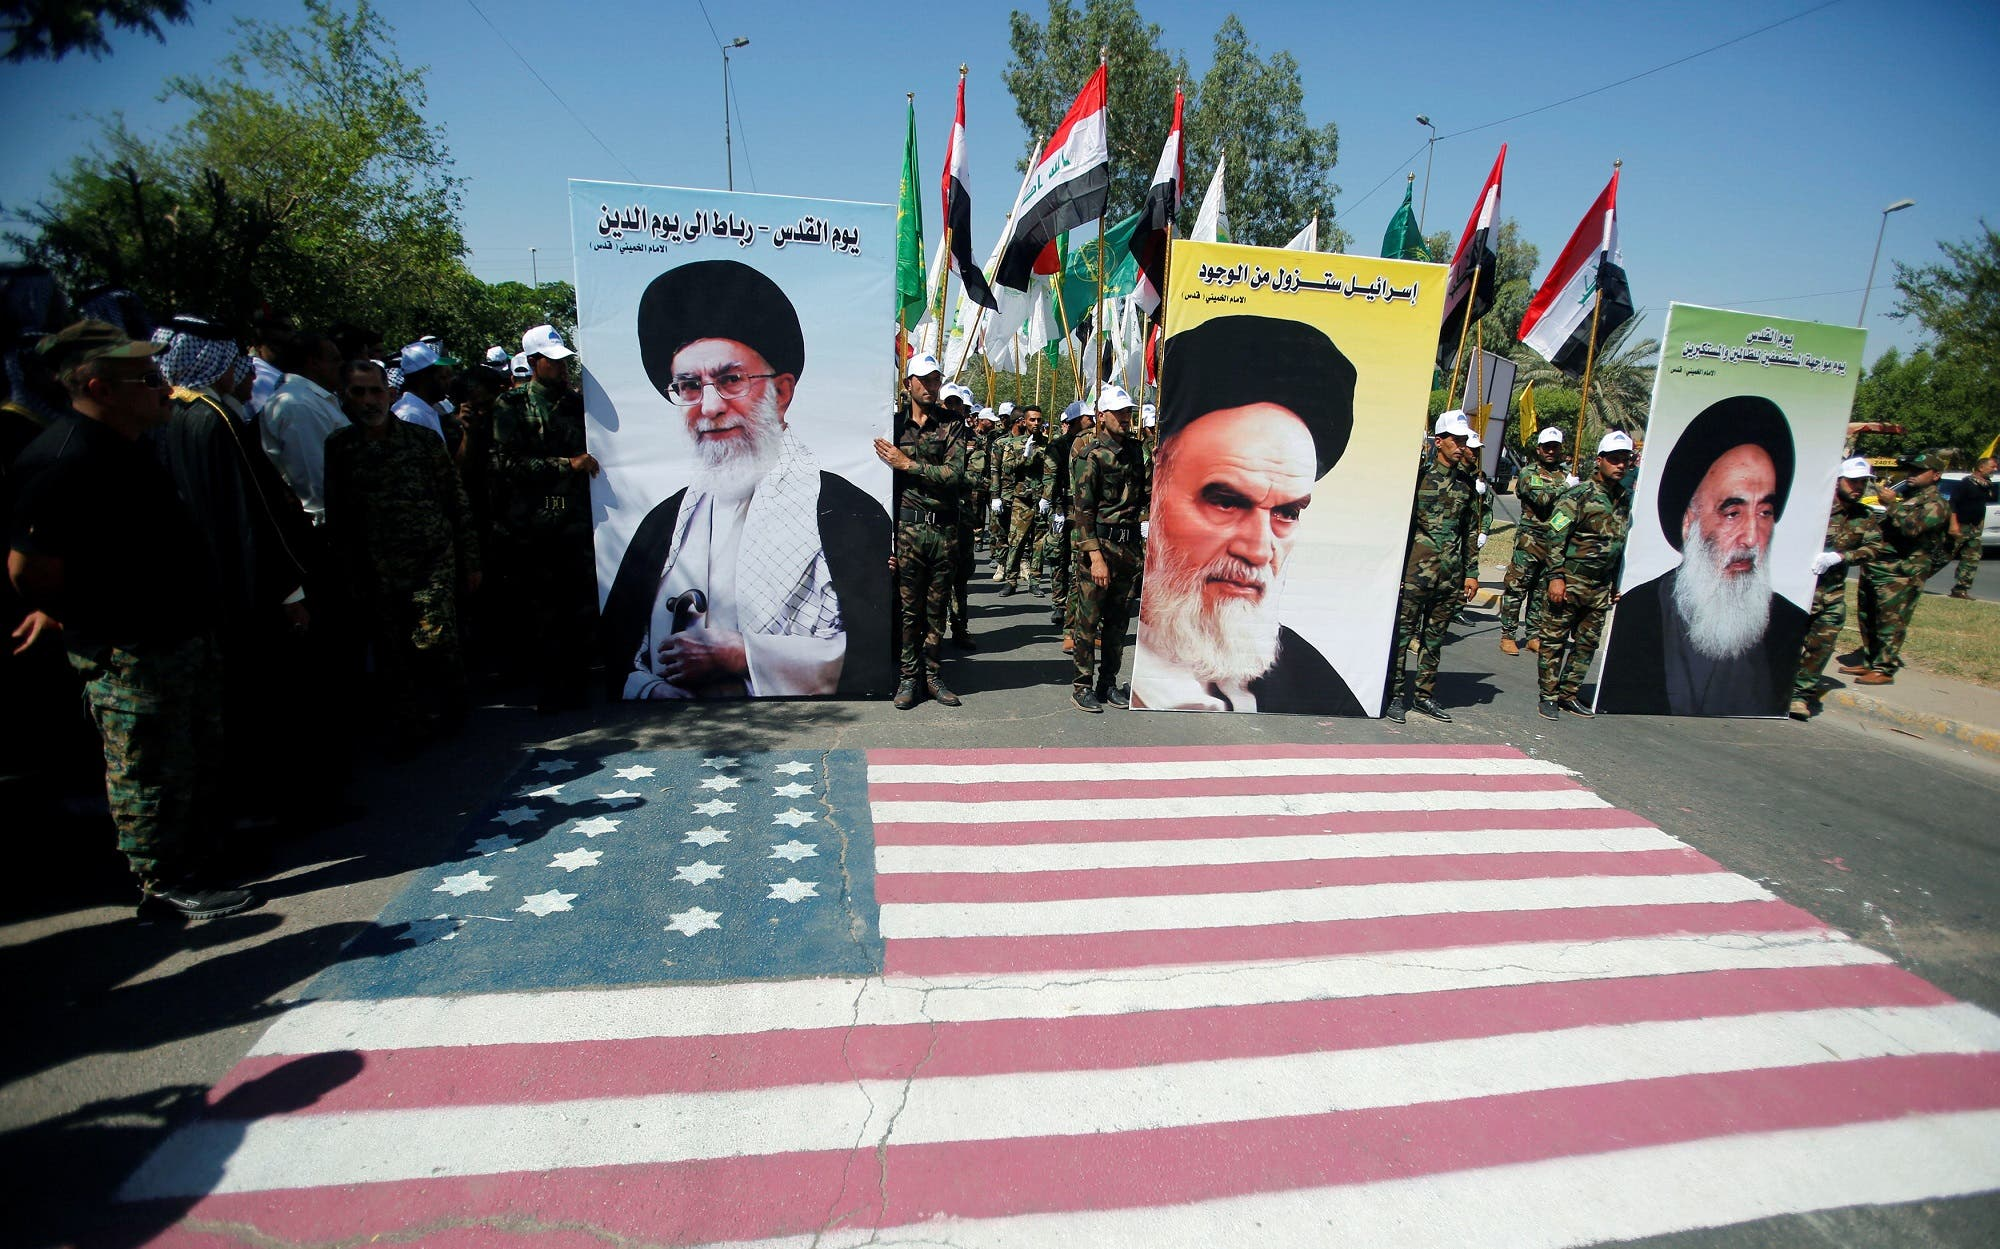 Members of Popular Mobilization hold portraits of Ayatollah Khomeini (C), Supreme Leader Ayatollah Ali Khamenei (L) and Iraq's top Shi'ite cleric Grand Ayatollah Ali al-Sistani during a parade marking the annual al-Quds Day in Baghdad on June 23, 2017. (Reuters)